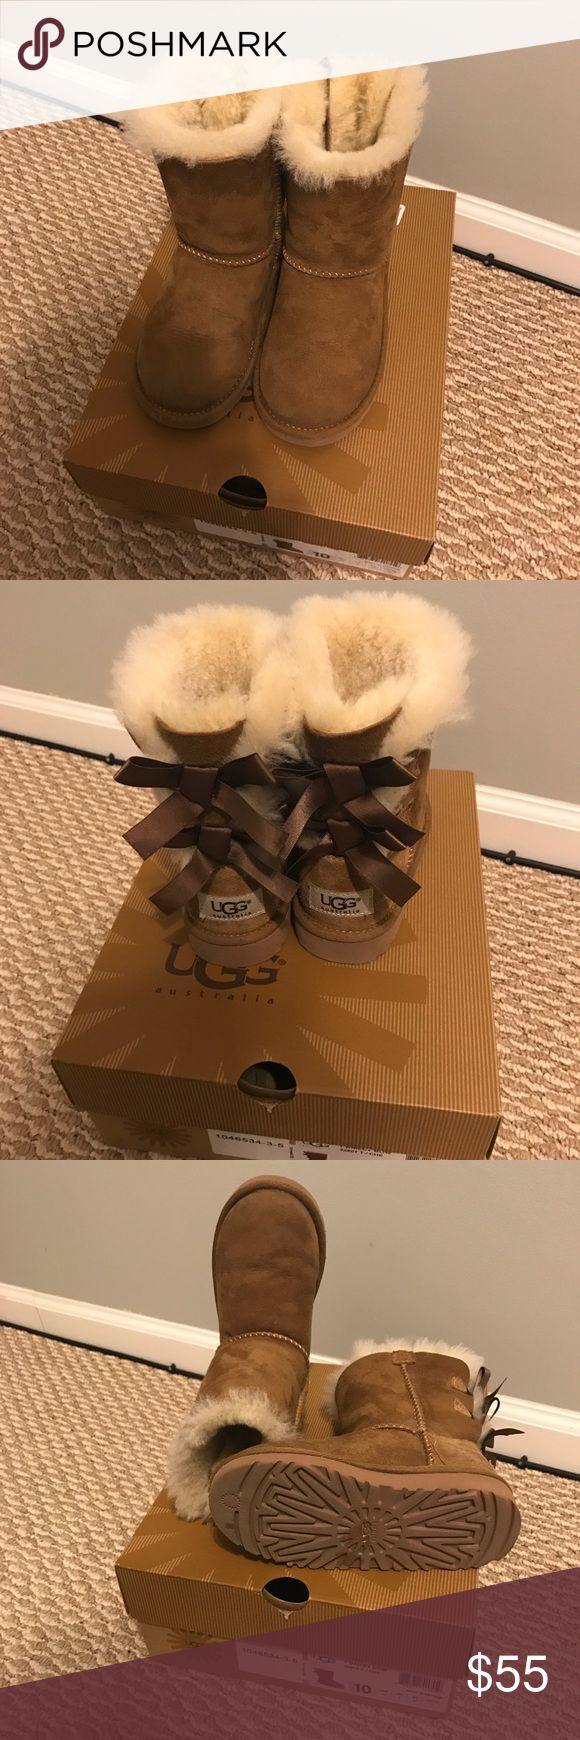 Girls Ugg Bailey Bow Boots 10 Toddler Still in box. Great condition. Minimal signs of wear. NO offers will be accepted. Retail $120. Sizing is your responsibility. NOT MINE UGG Shoes Boots